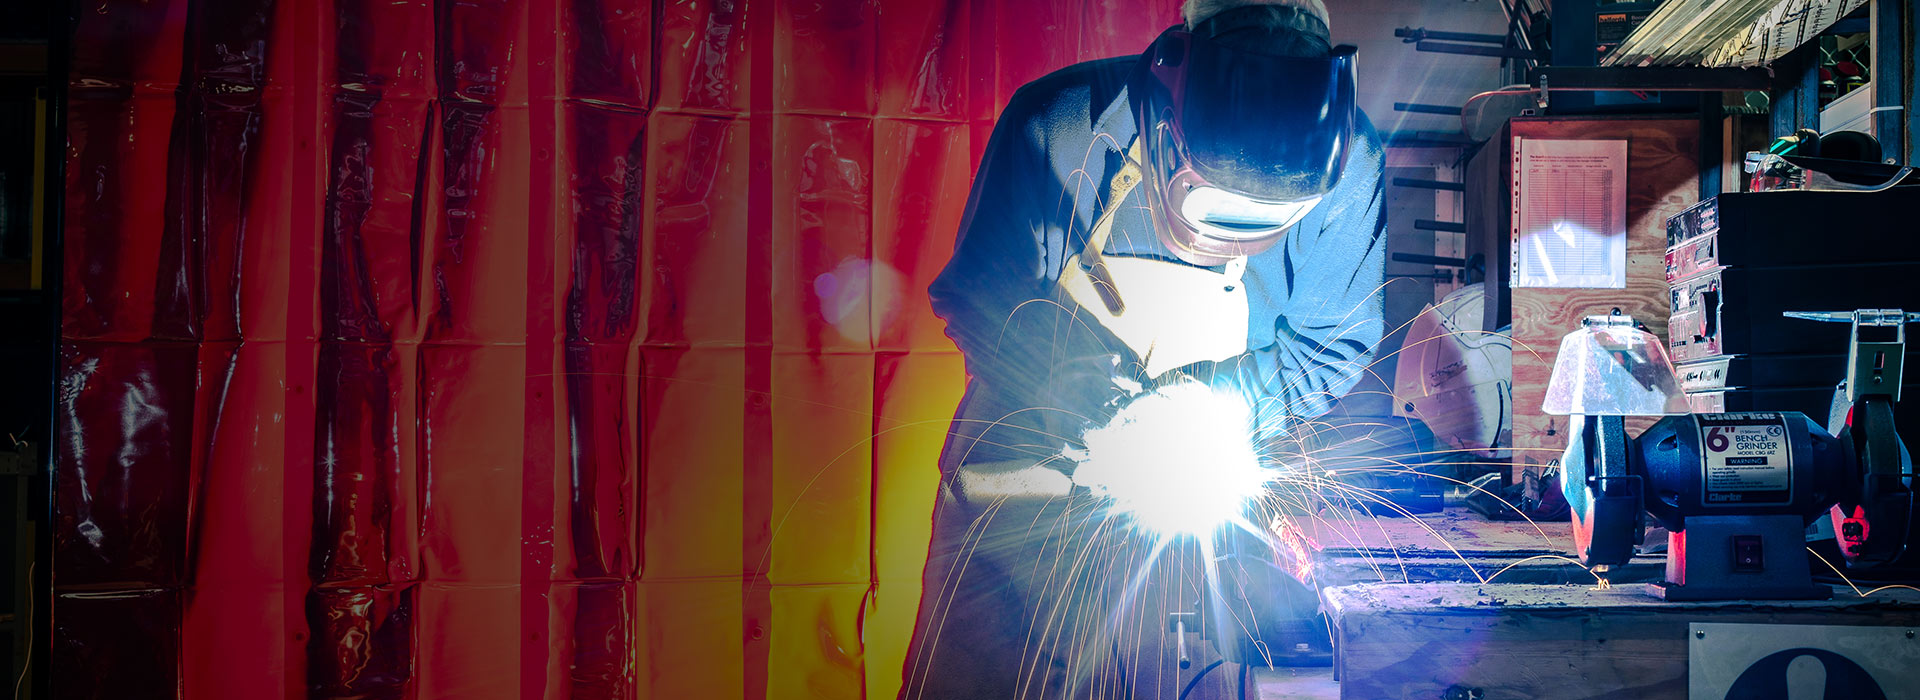 welder using a welding frame